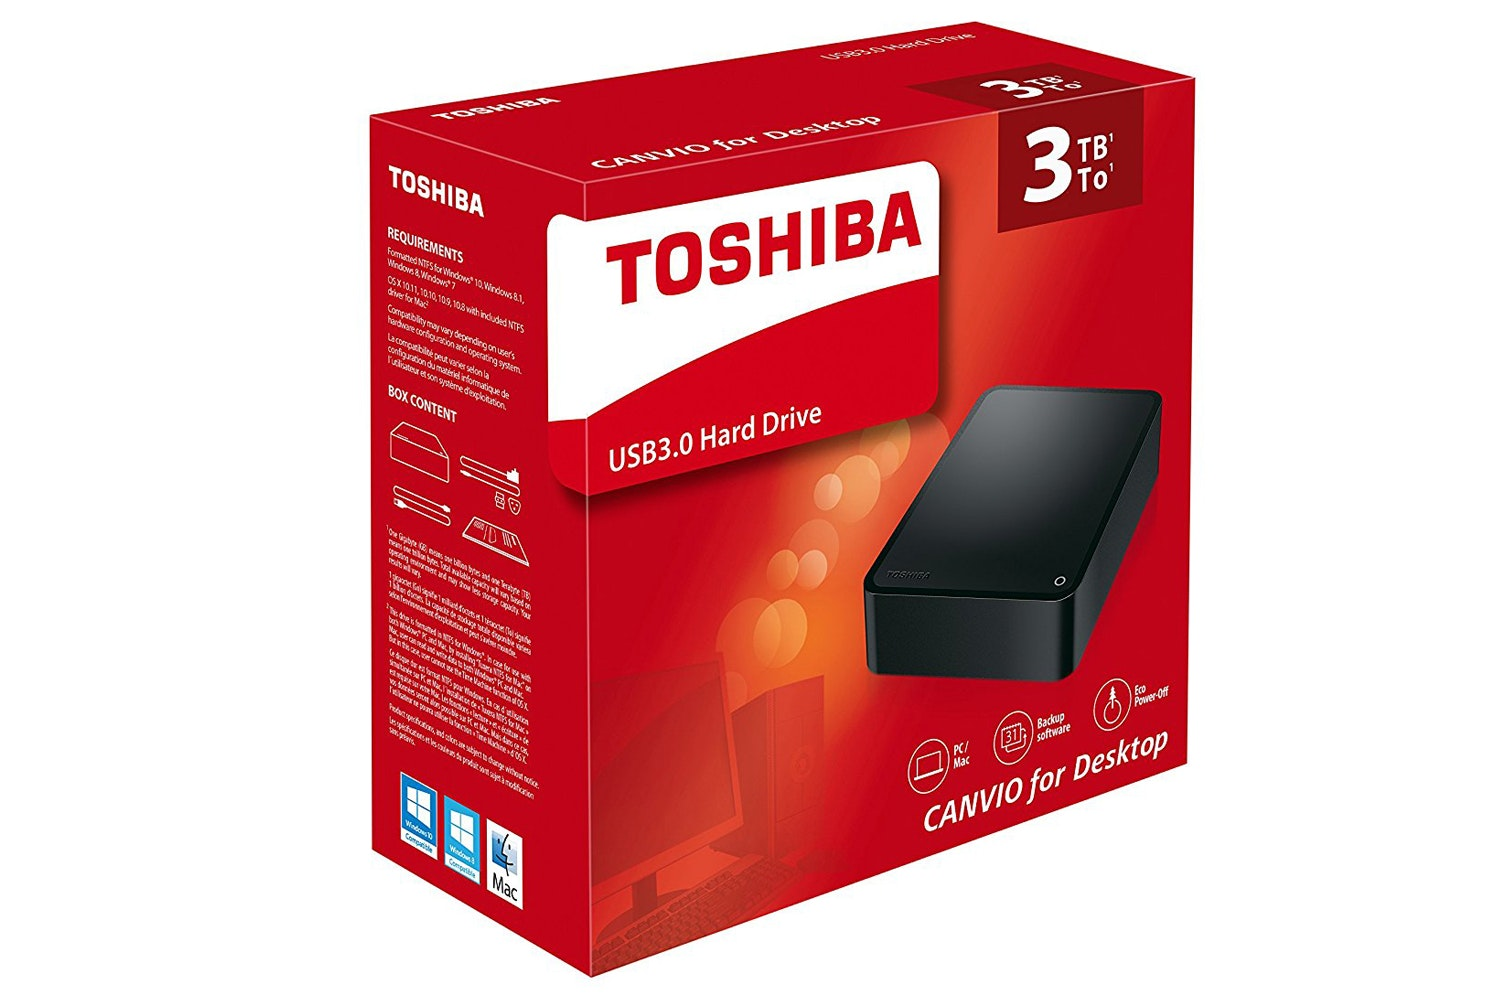 Toshiba Canvio Hard Drive for Desktop | 3TB